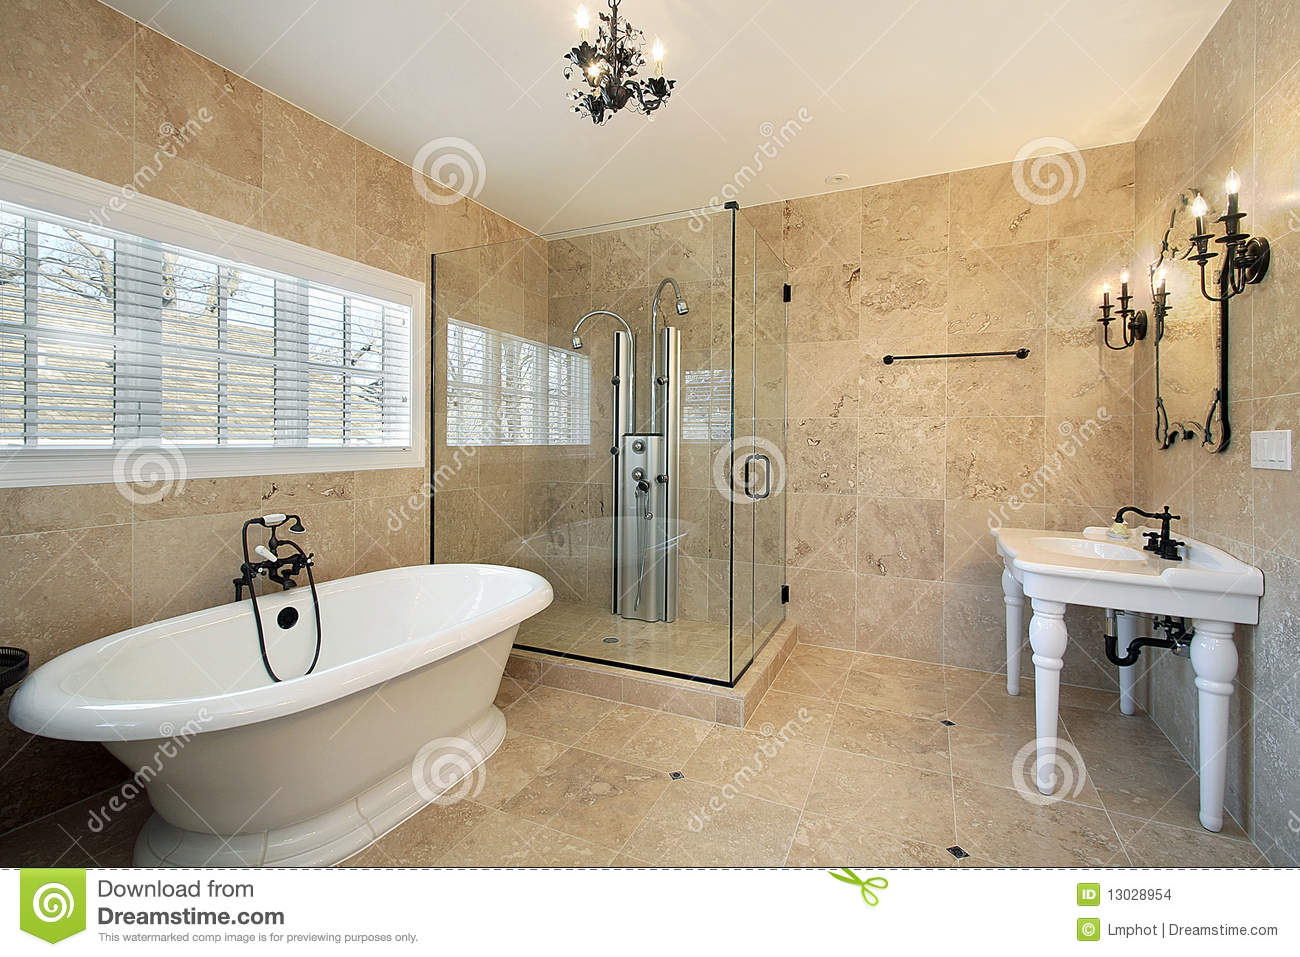 Schlauchbad Master Bath With Large Glass Shower Stock Photo Image